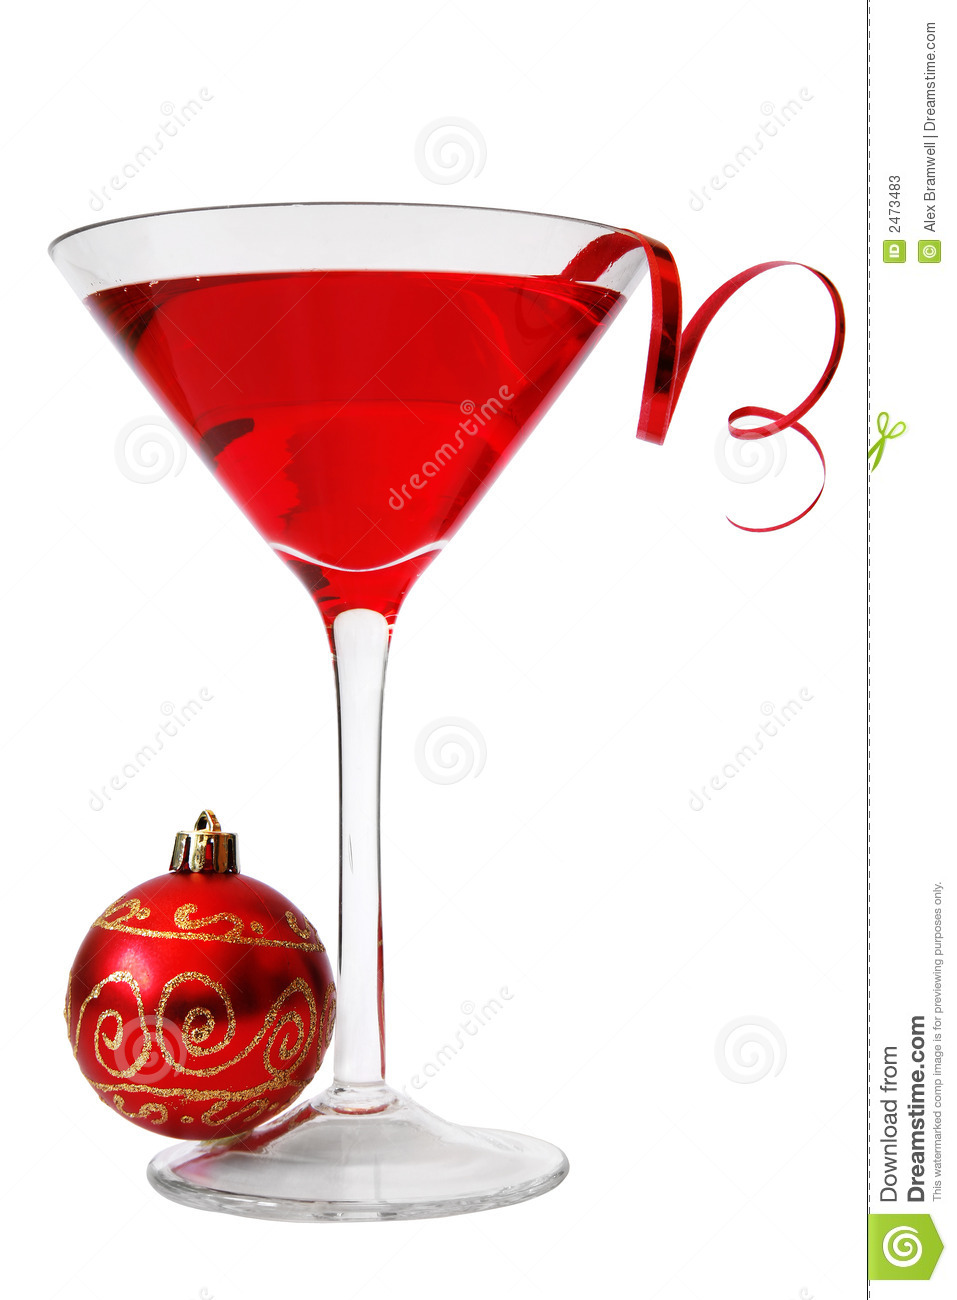 Holydays clipart martini Clip art drink christmas Stock